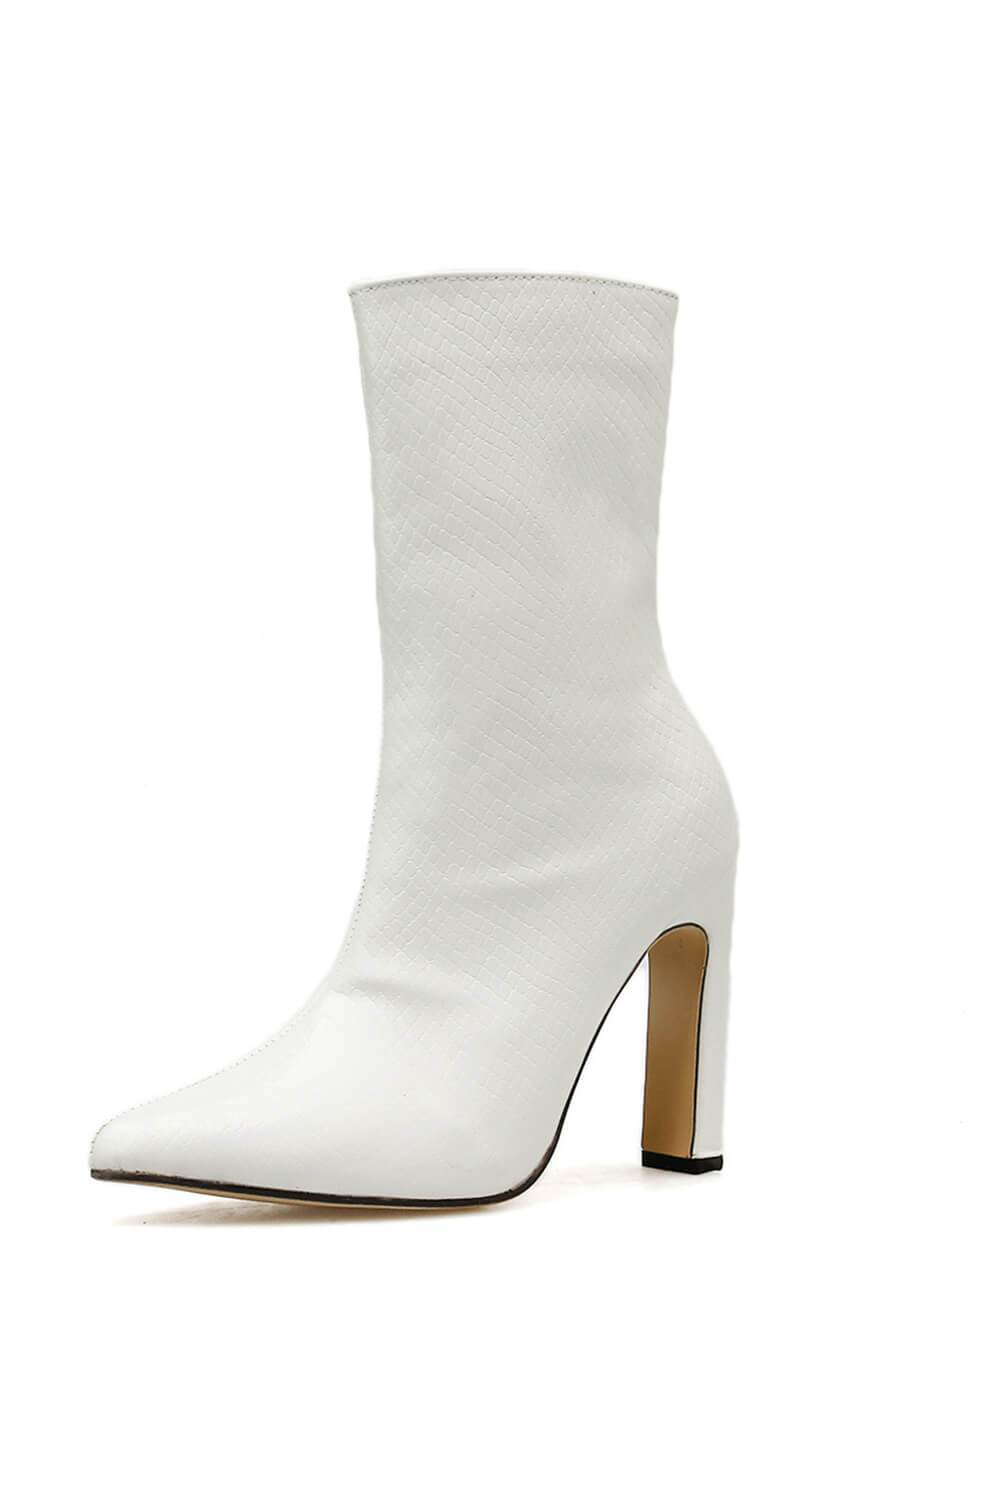 White Lizard Slim Block Heel Ankle Boots